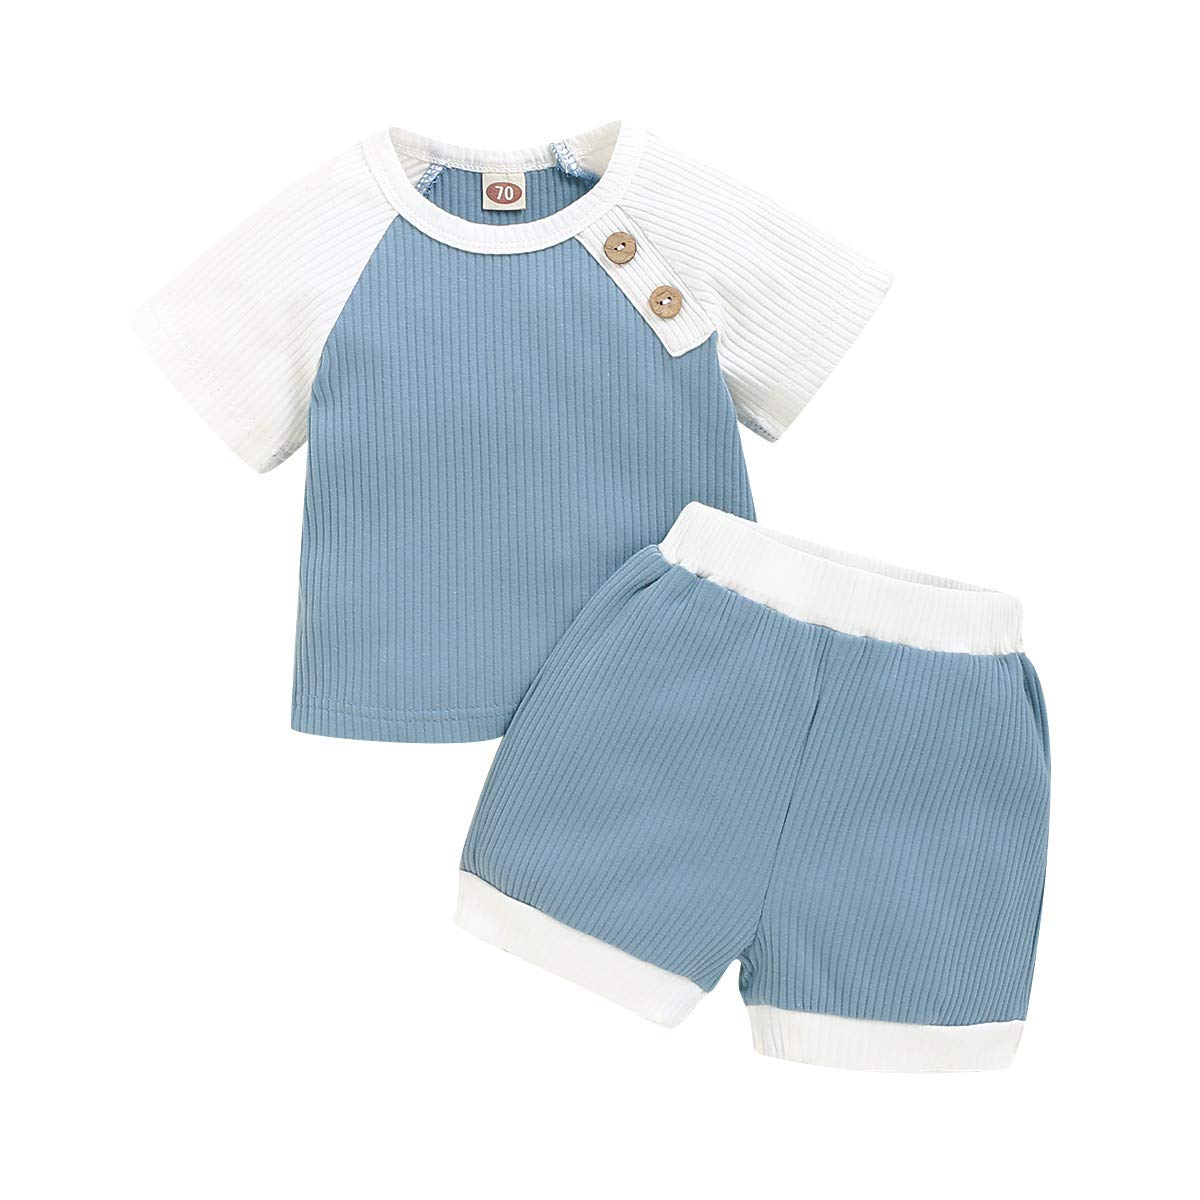 Infant Baby Boy Clothes Short Sleeve T-Shirt Tops + Solid Shorts 2PCS Toddler Summer Outfit Set